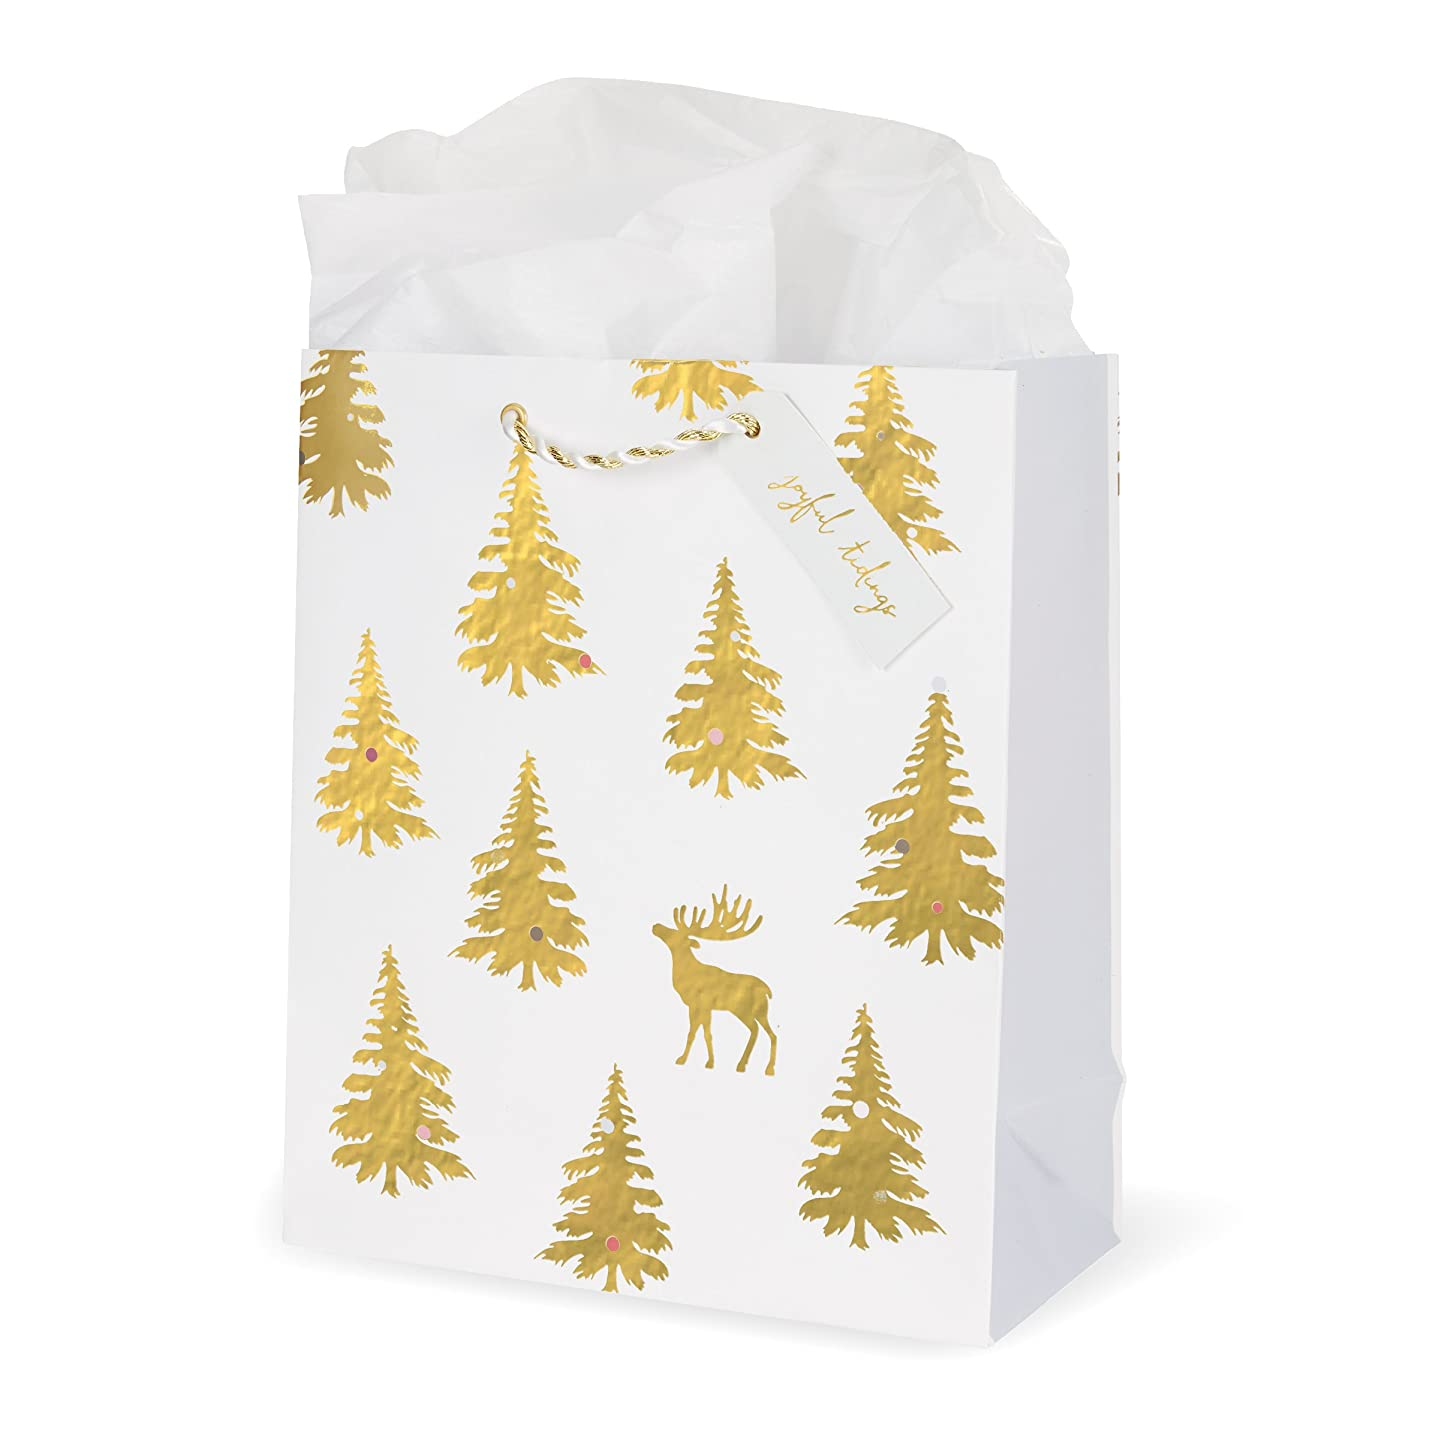 C.R. Gibson Large Christmas Reindeer and Christmas Tree Gold Foil Gift Bag 8.4'' W x 9.75'' H x 4'' D